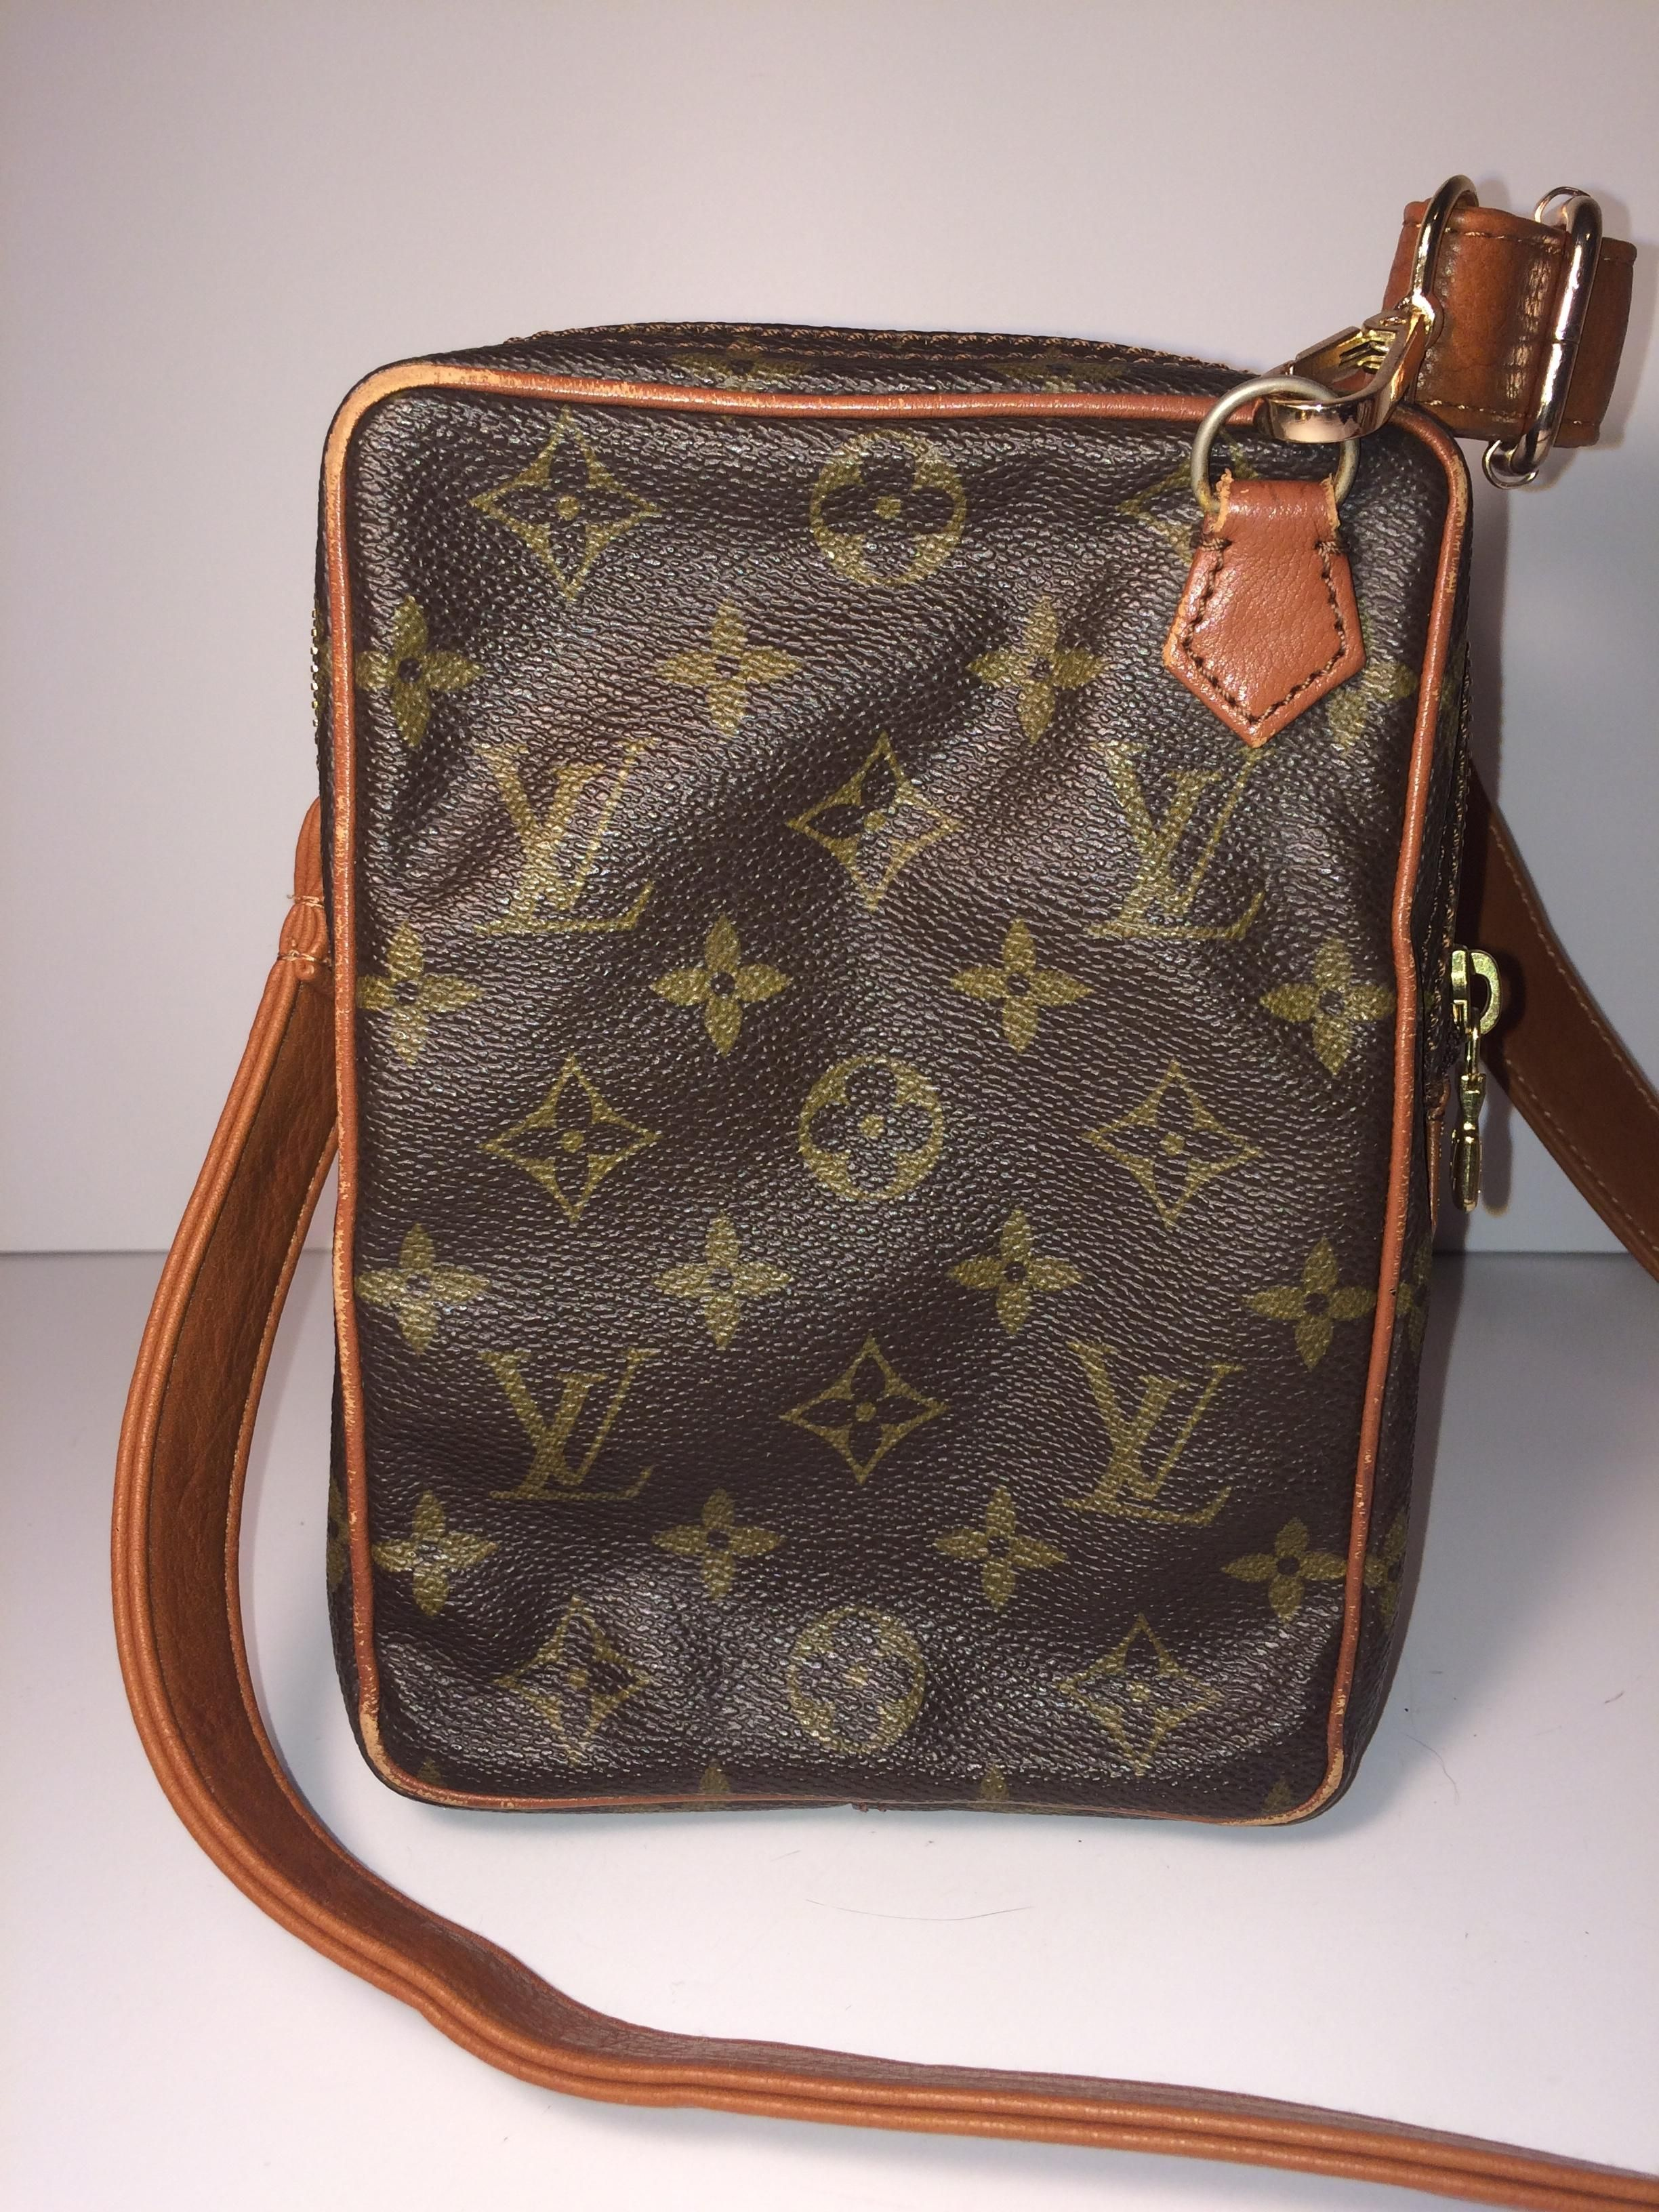 15ba8d3b4ca3 Louis Vuitton Mini Amazon 862 With Leather Strap And Free Charm Brown  Monogram Cross Body Bag